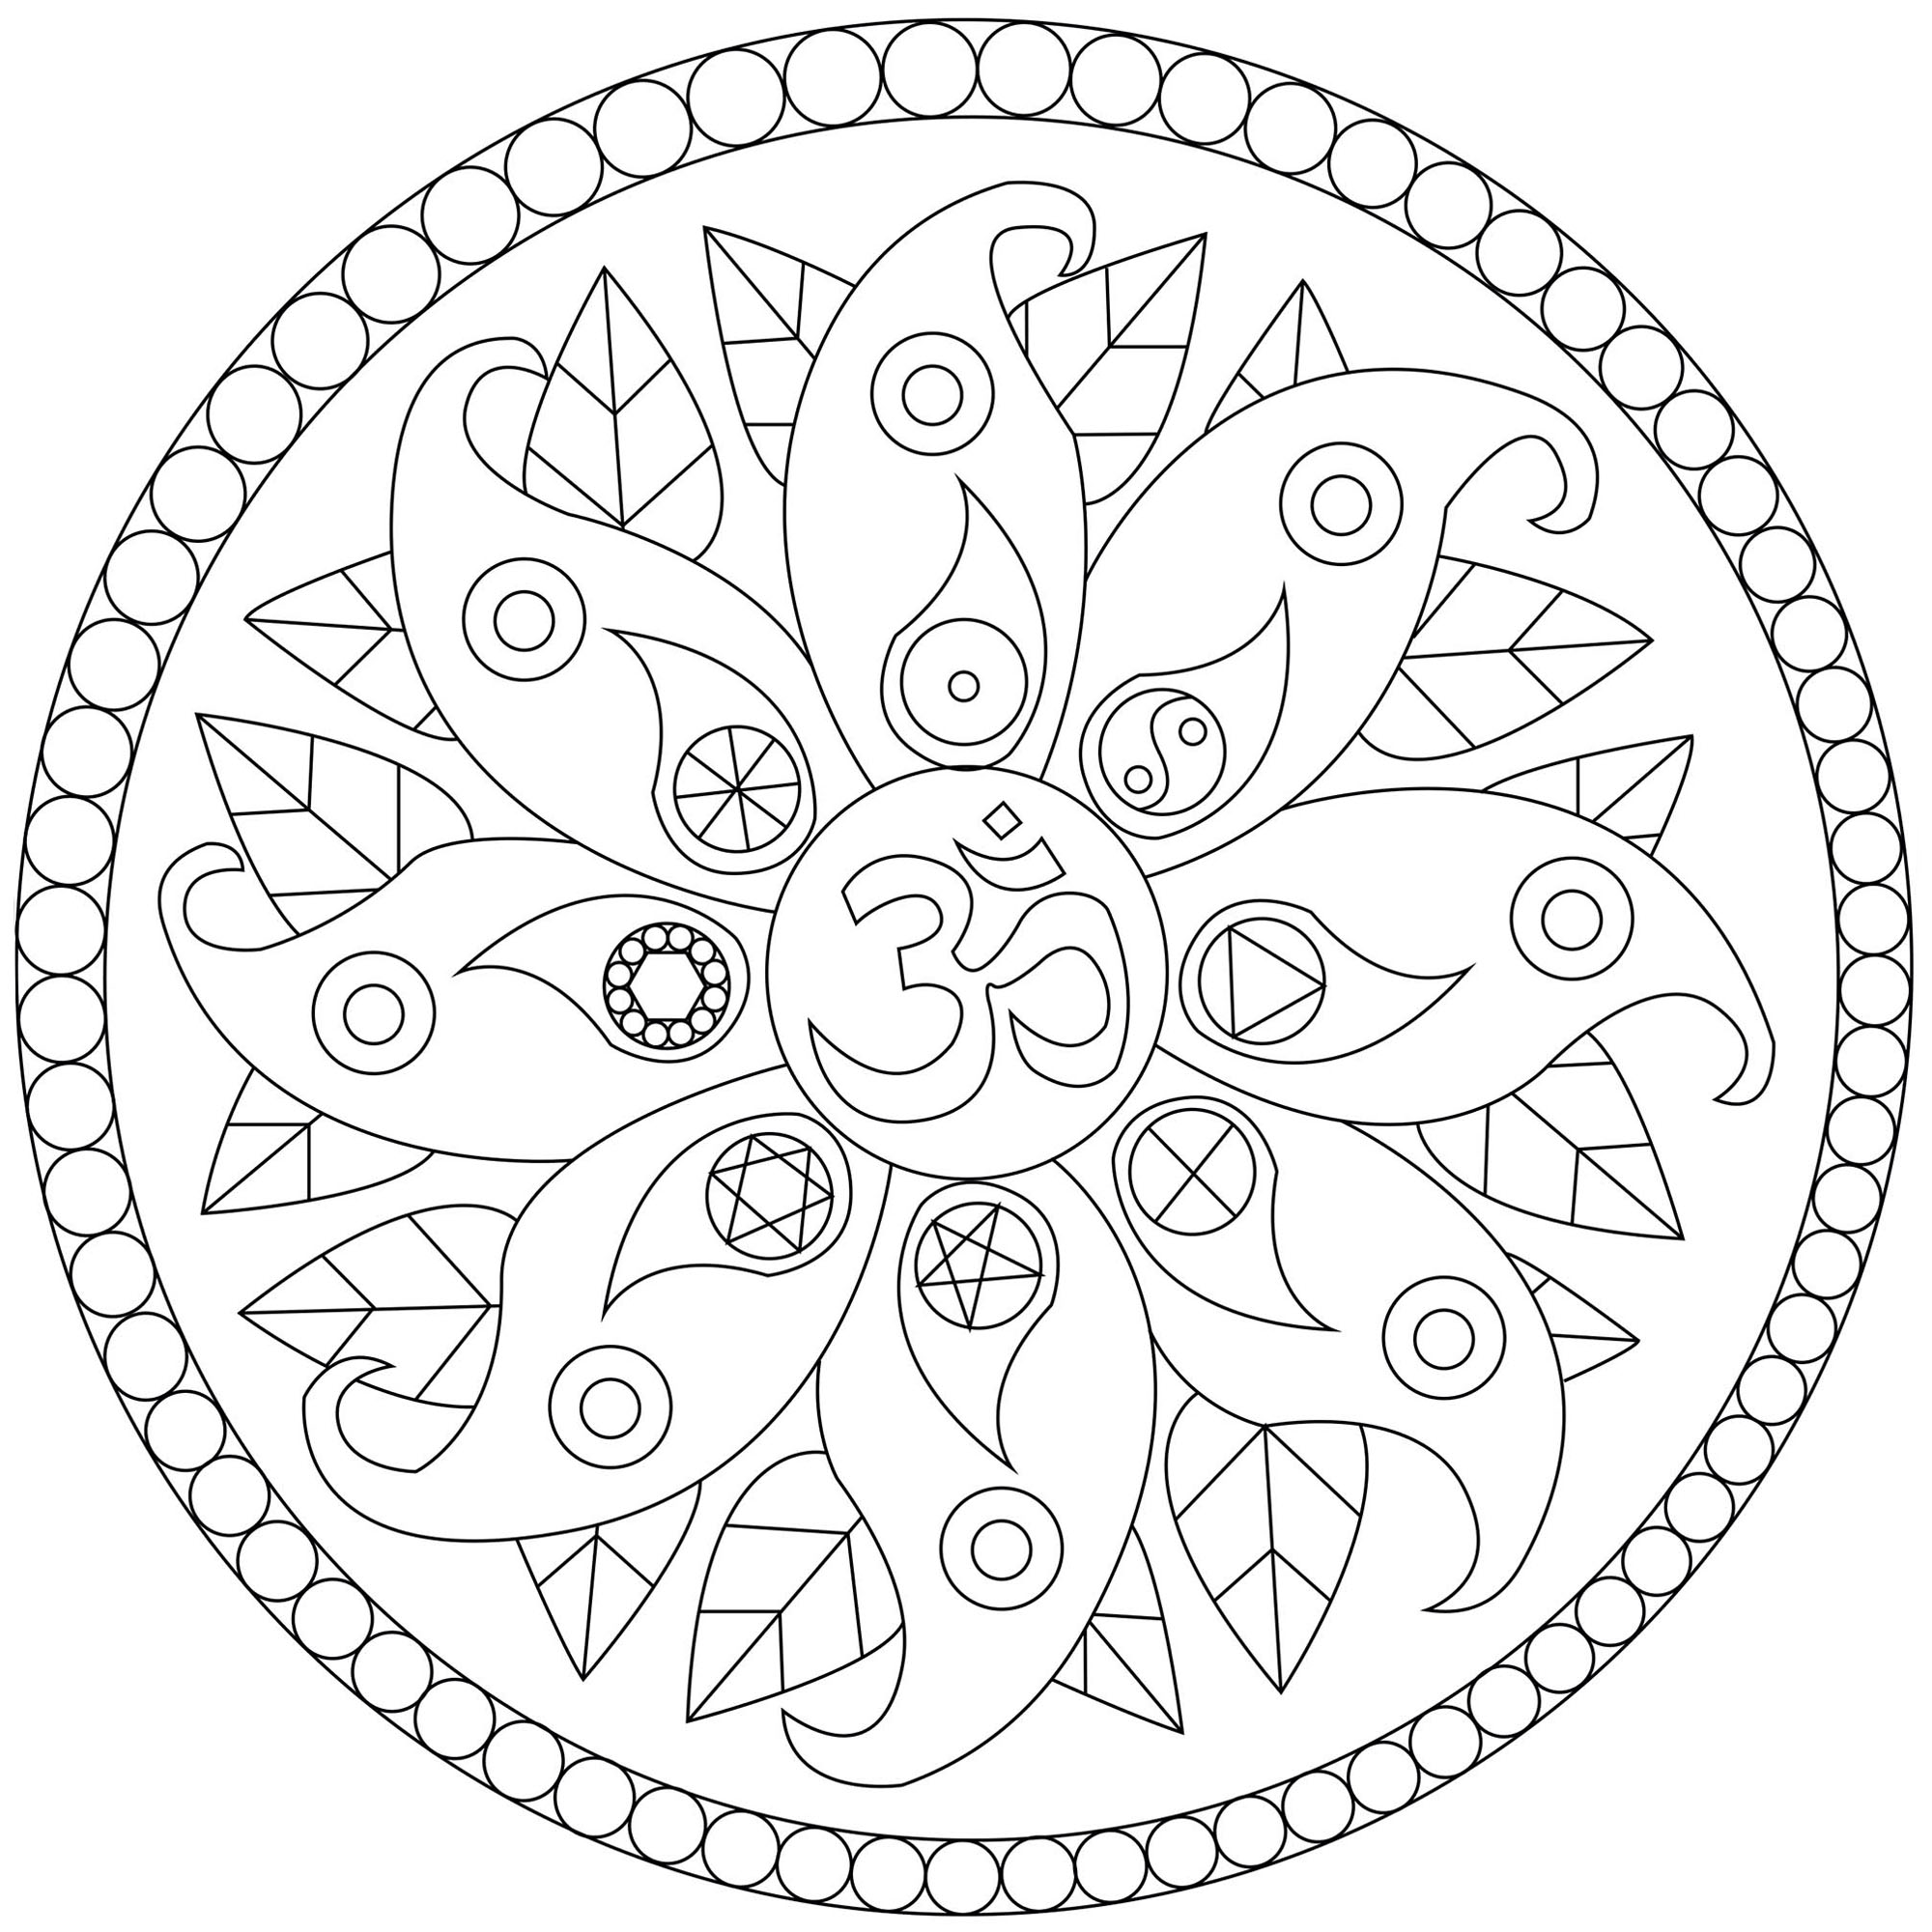 Peace Coloring Pages | Peace sign drawing, Peace sign art ... | 2000x2000